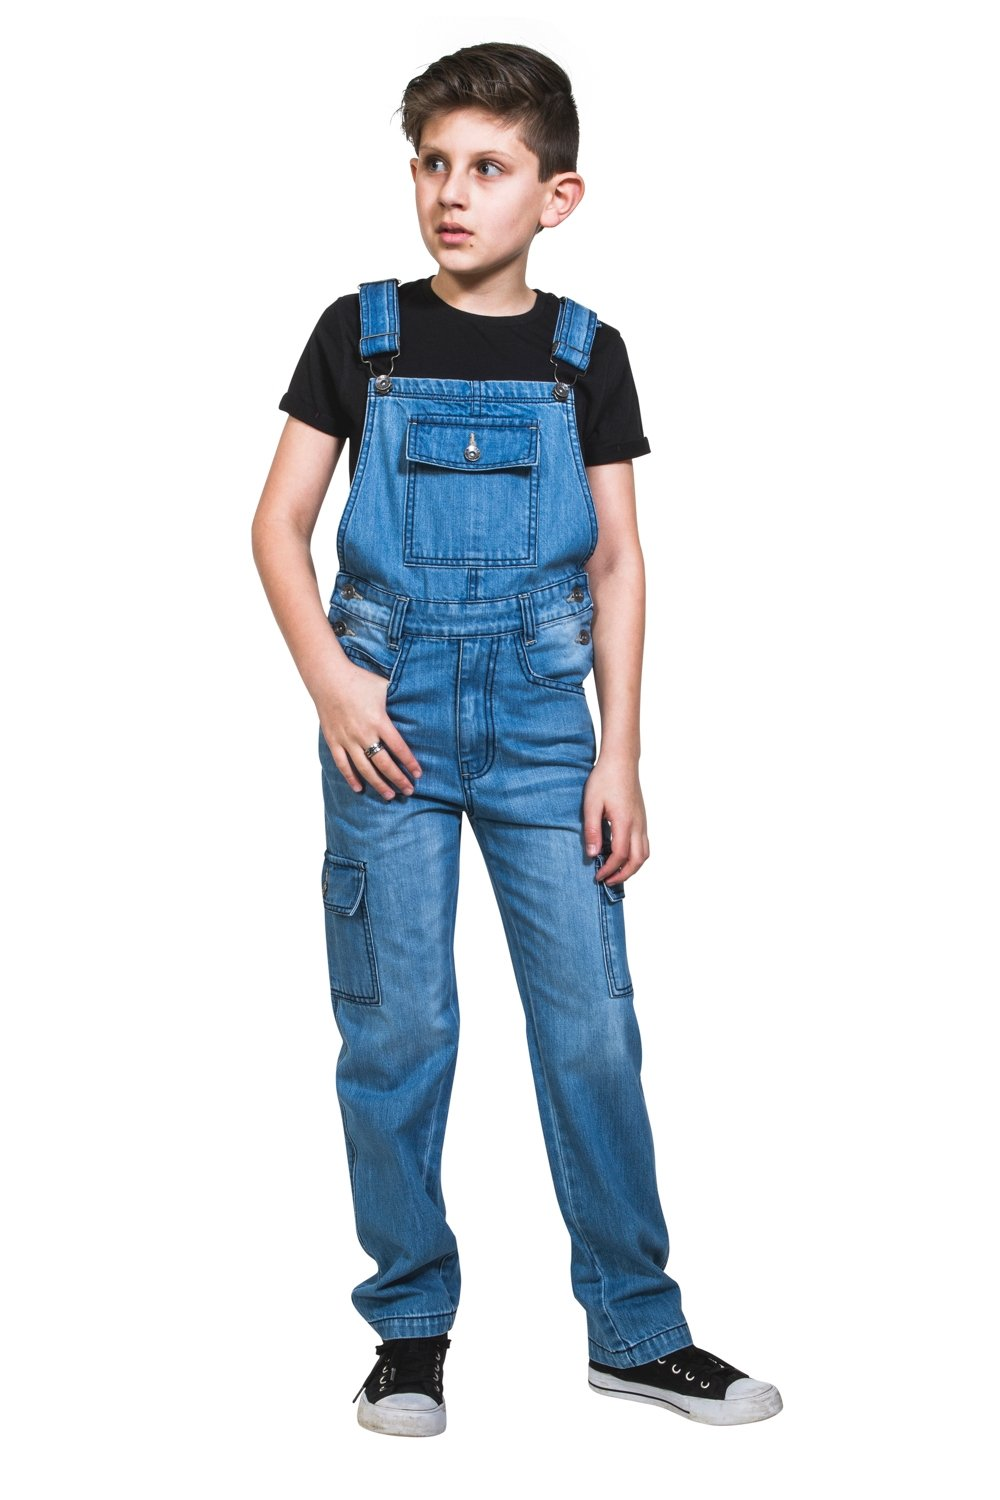 USKEES Kids Palewash Denim Overalls Age 4-14 Children's Cargo Pocket Dungarees